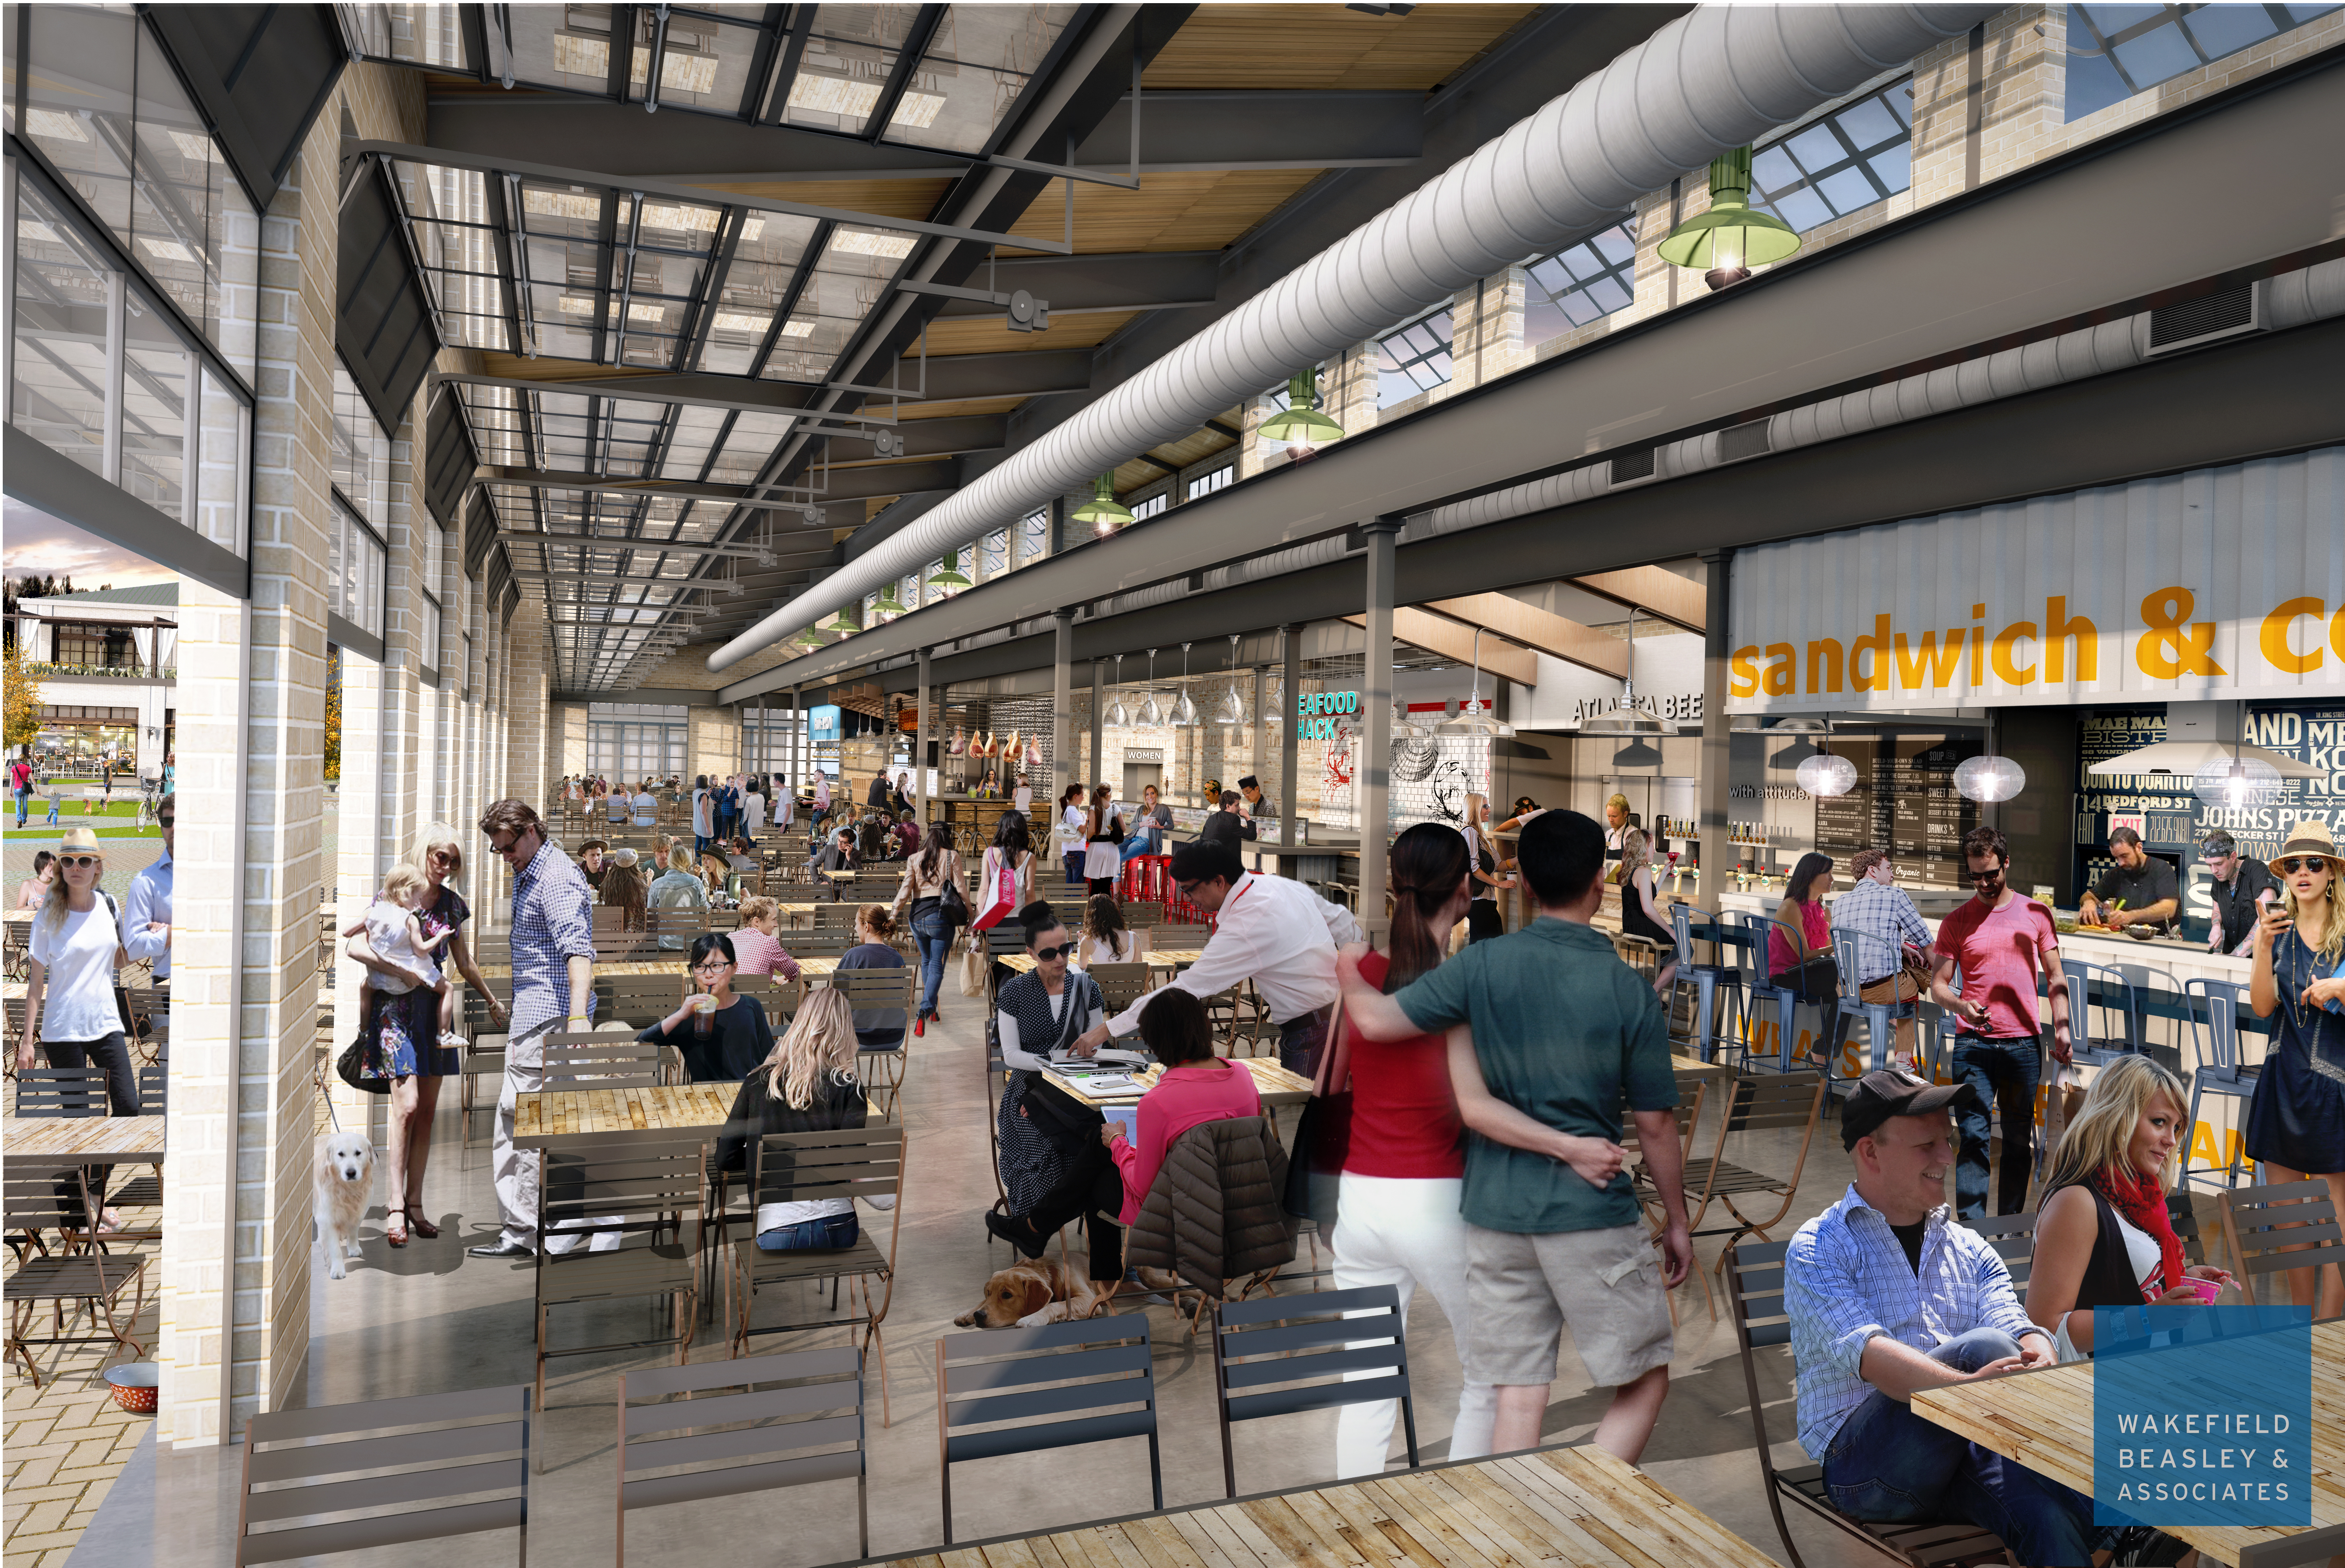 A rendering of Halcyon's planned Krog Street Market-style food hall, with people seated between kiosks and large, open garage doors.